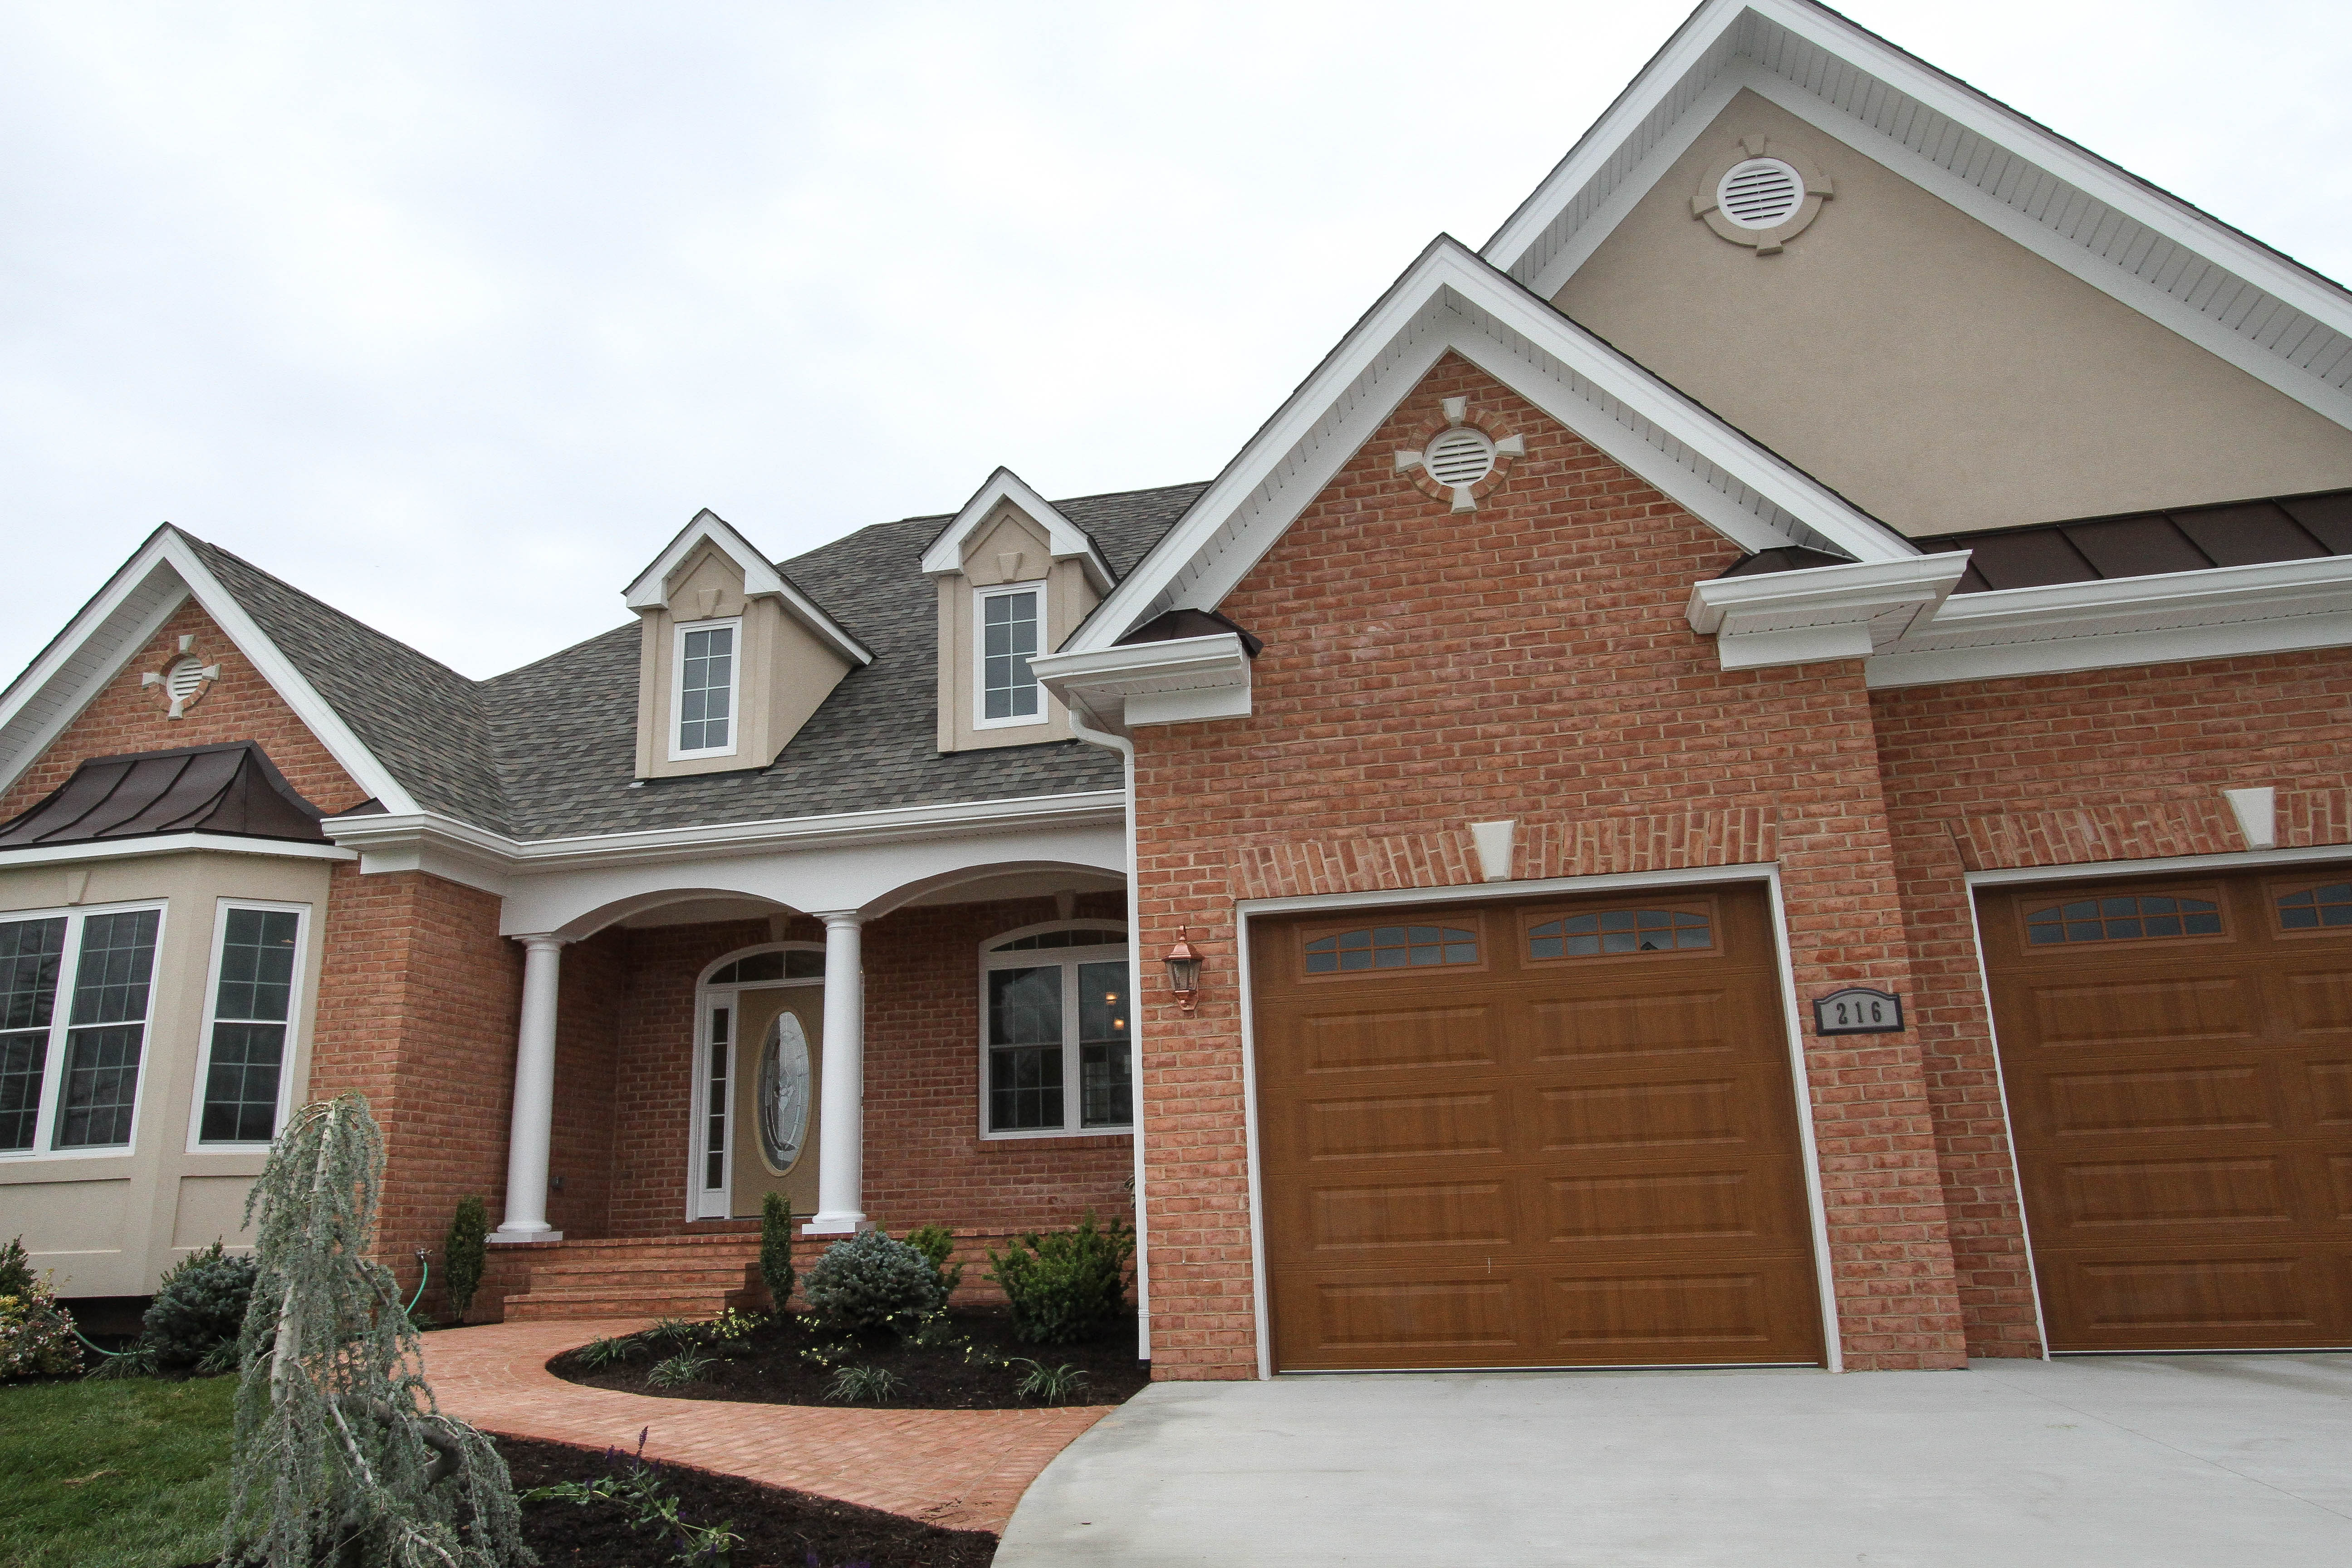 Homes and Lots for Sale from a New Home Builder Winchester Va